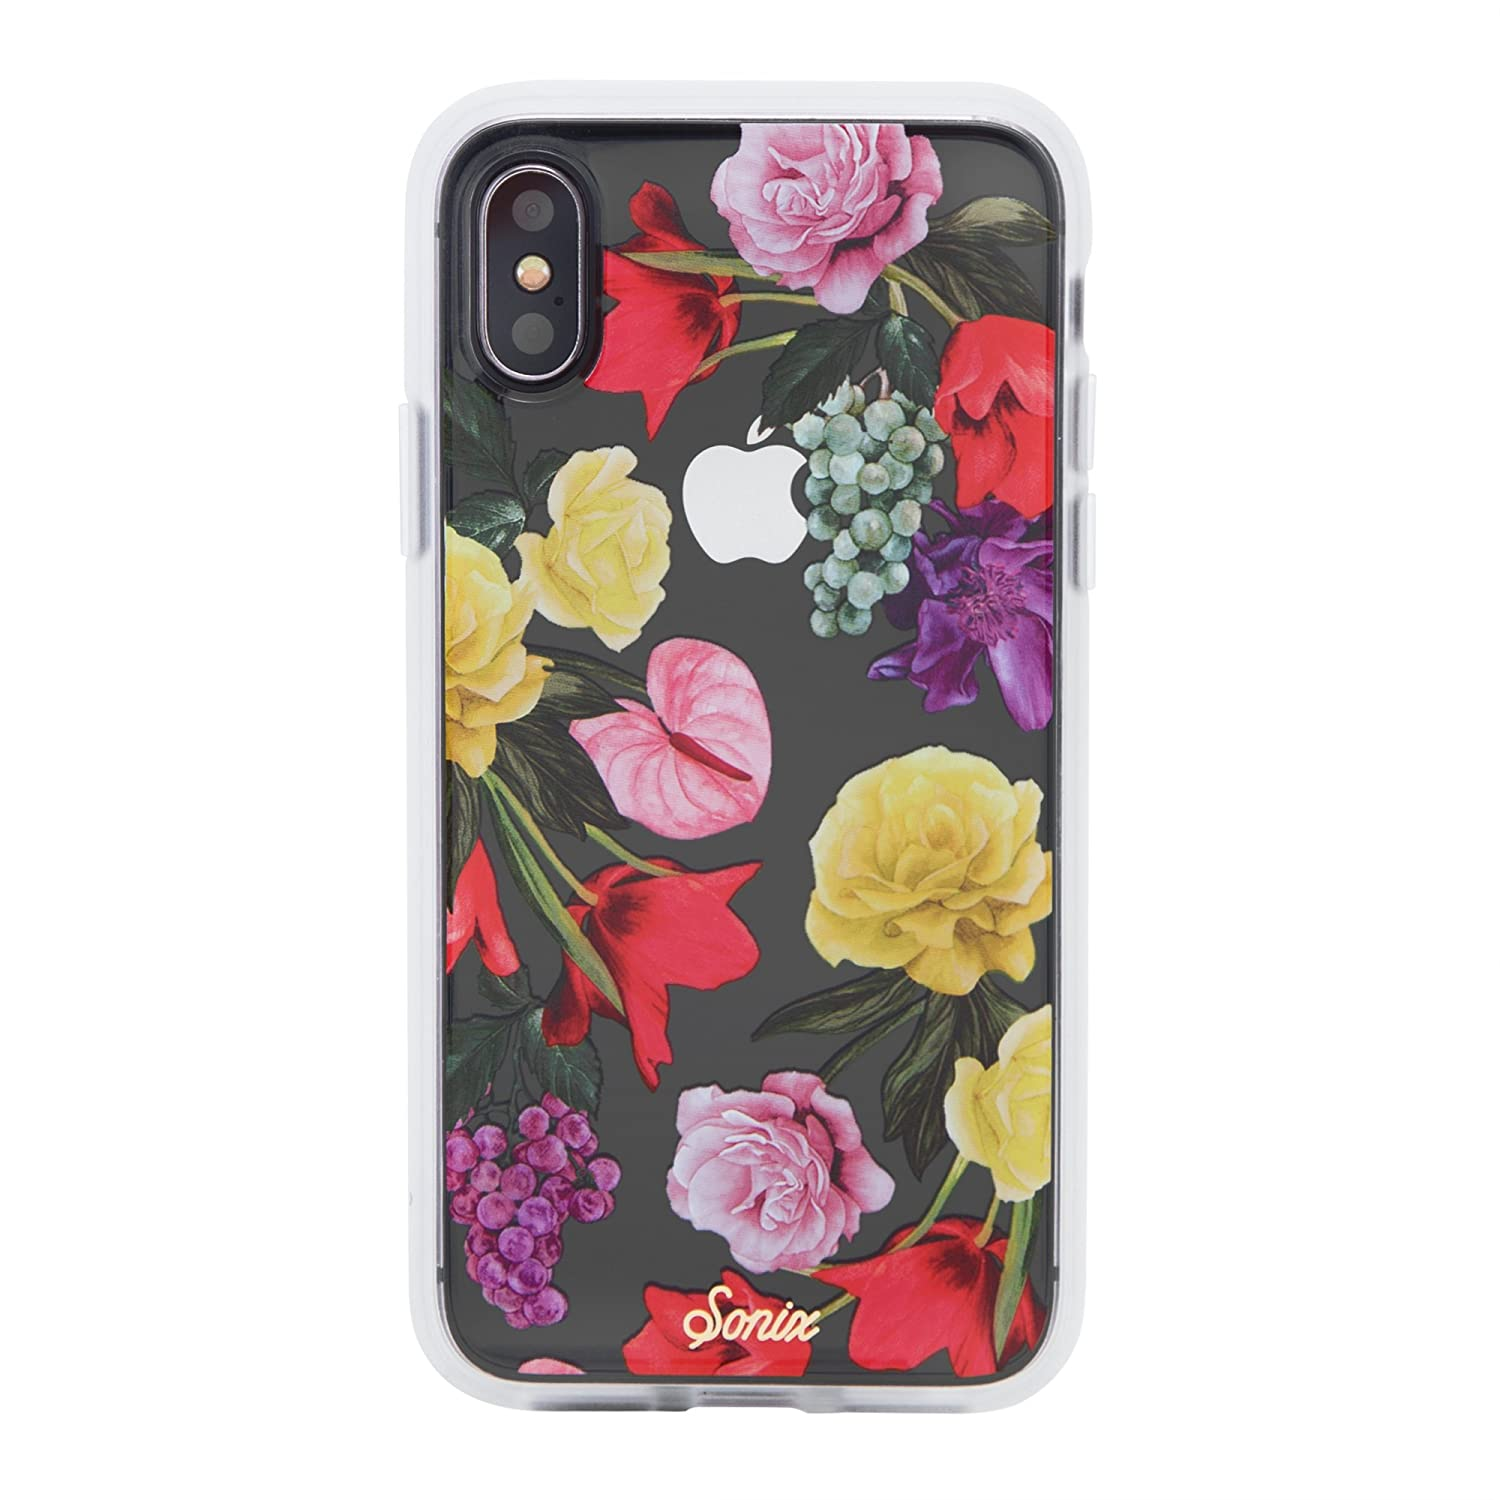 ba156094b5fb4 iPhone Xs, iPhone X, Betty Bloom (Flowers) Cell Phone Case [Military Drop  Test Certified] Women's Protective Clear Case for Apple iPhone X, iPhone Xs